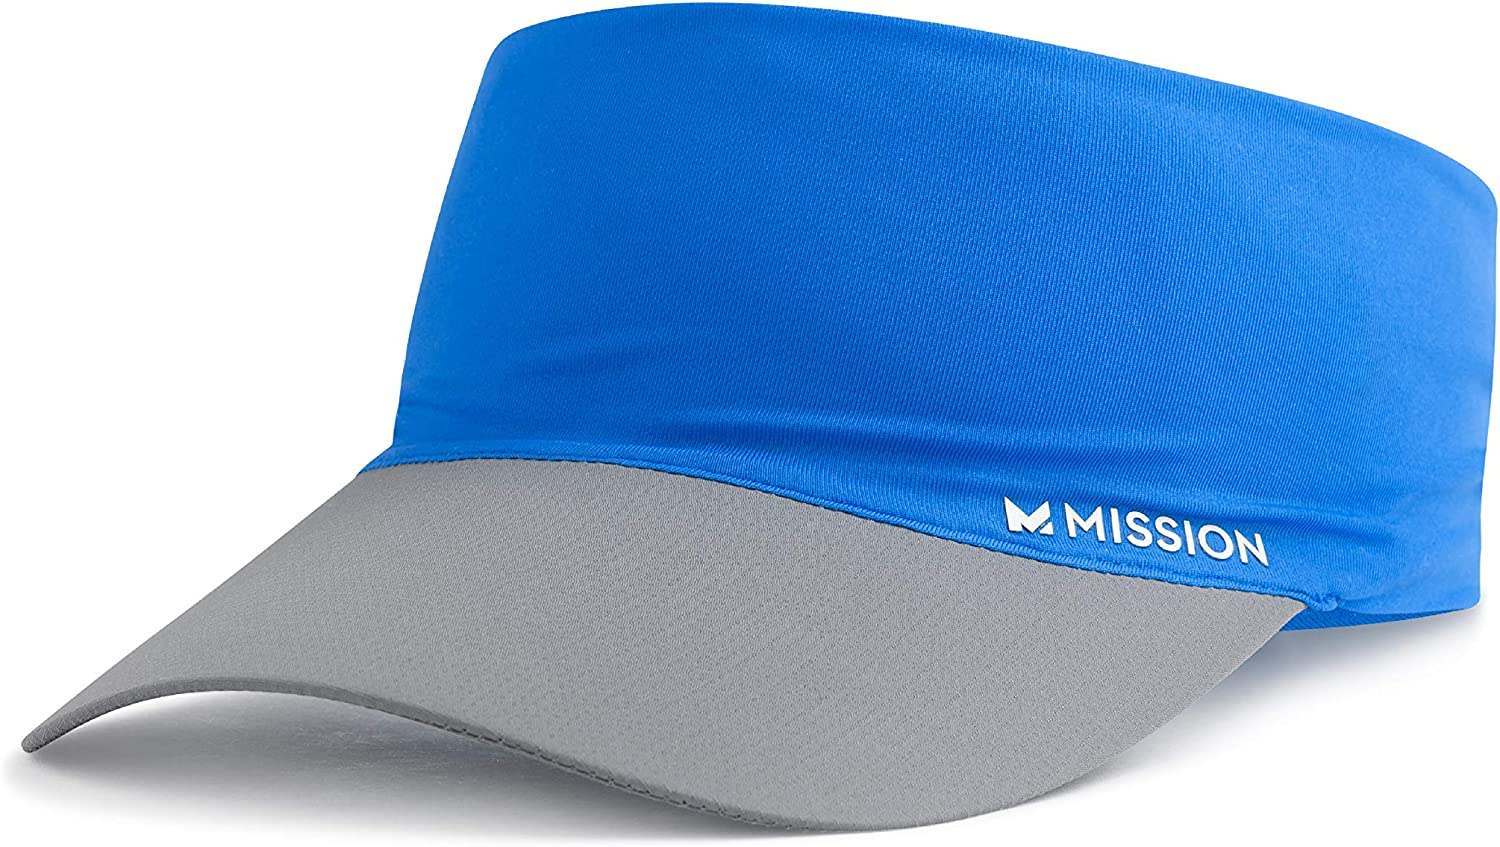 MISSION Cooling Stretchy Visor- Lightweight, No Slip Band, UPF 50